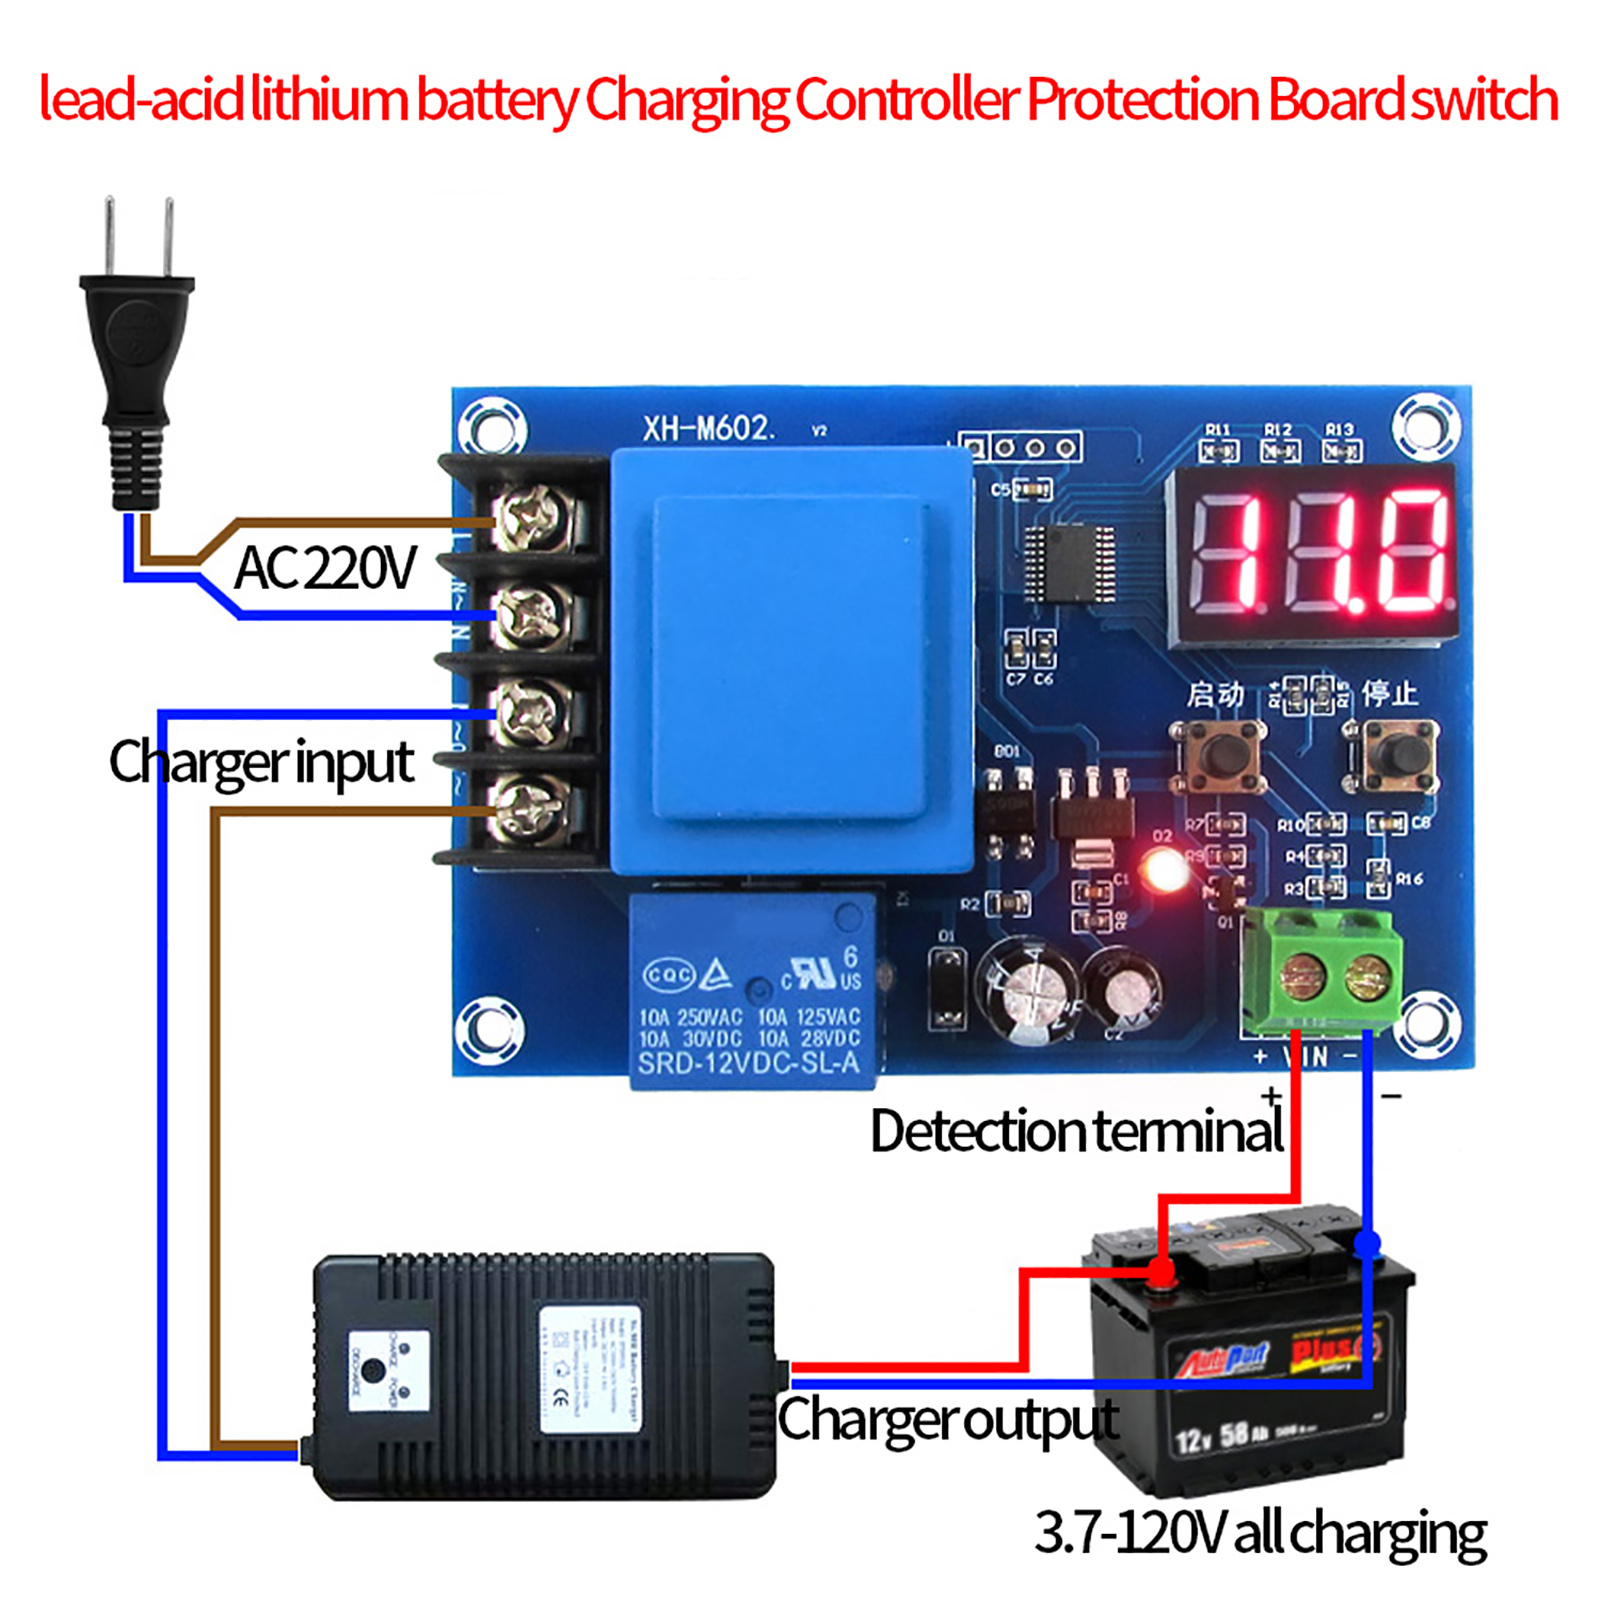 The Circuit Can Be Used To Charge 12v Lead Acid Batteries Battery Charger Controller 220v Protection Switch 24v Image Is Loading